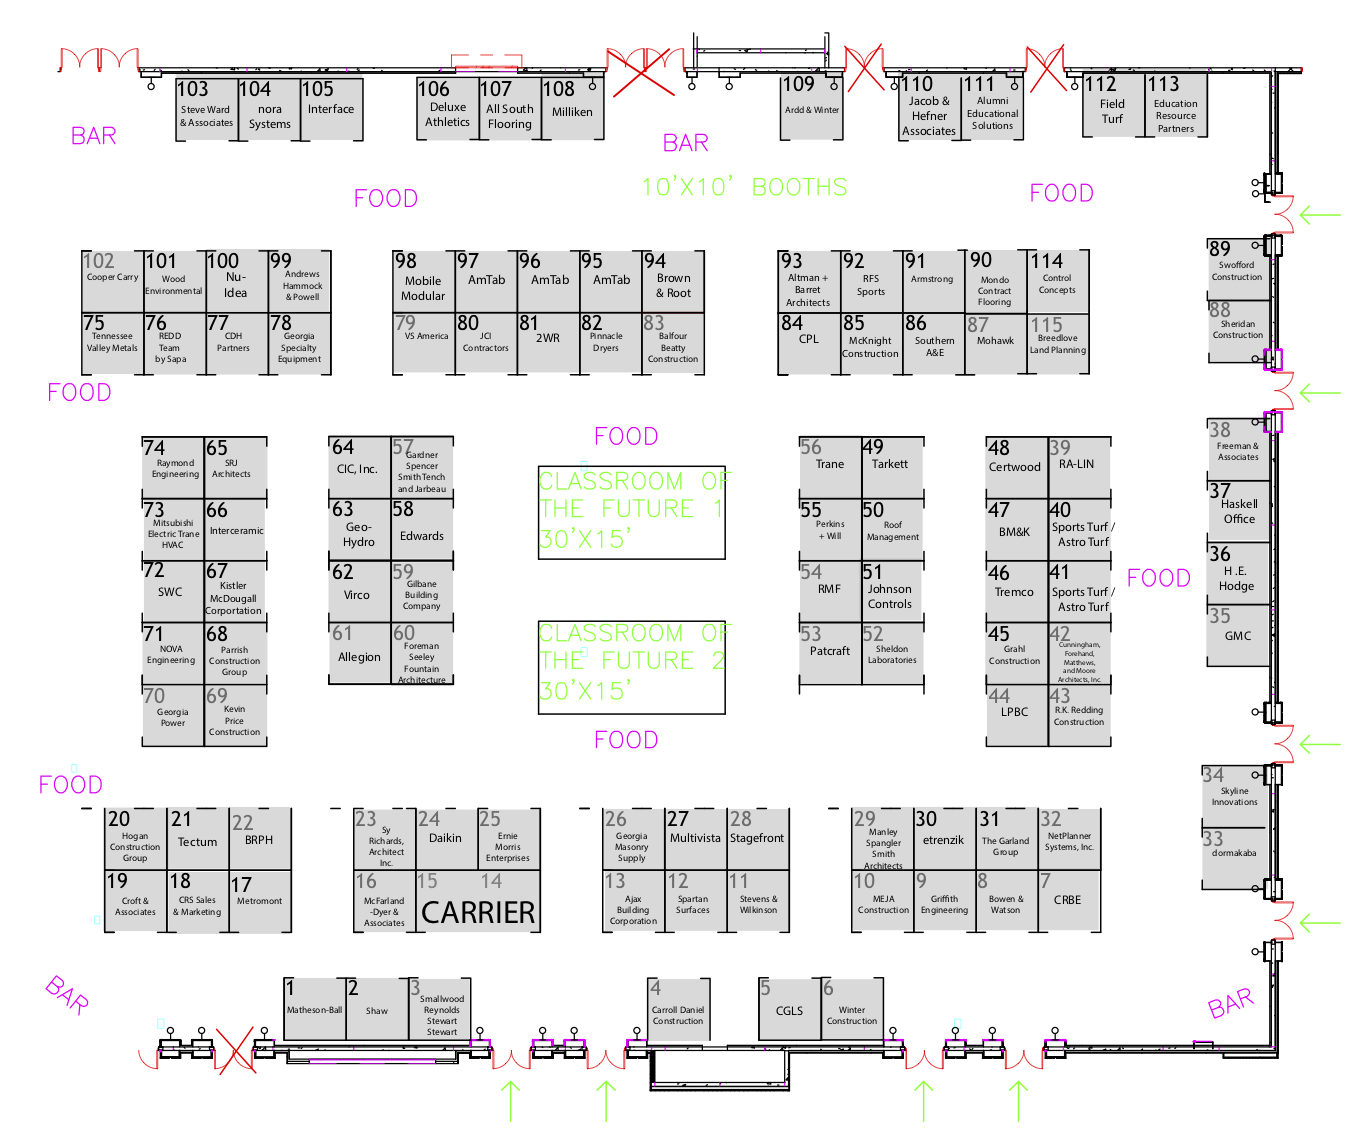 2019 Exhibitor Layout_FINAL